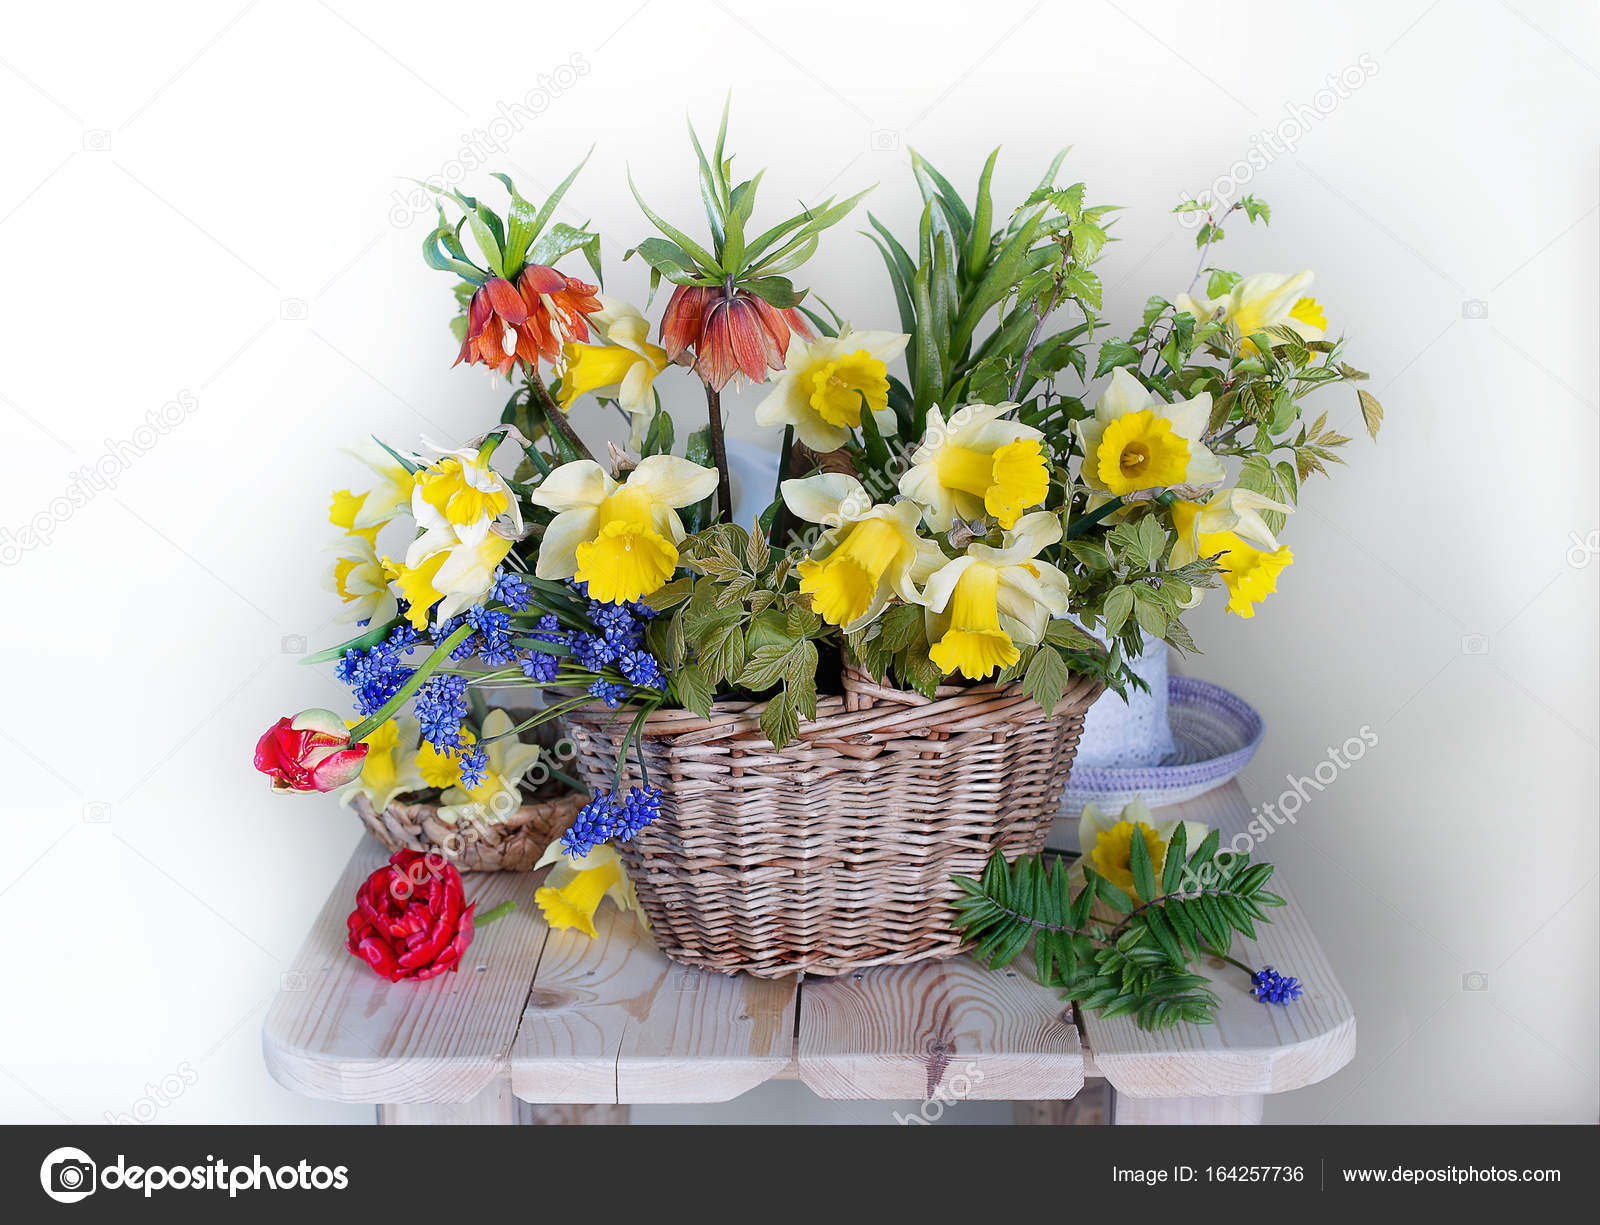 Bouquet of yellow and white flowersill life of beautiful bouquet of yellow and white flowersill life of beautiful flowers cultivated in a vase reviewsmspy